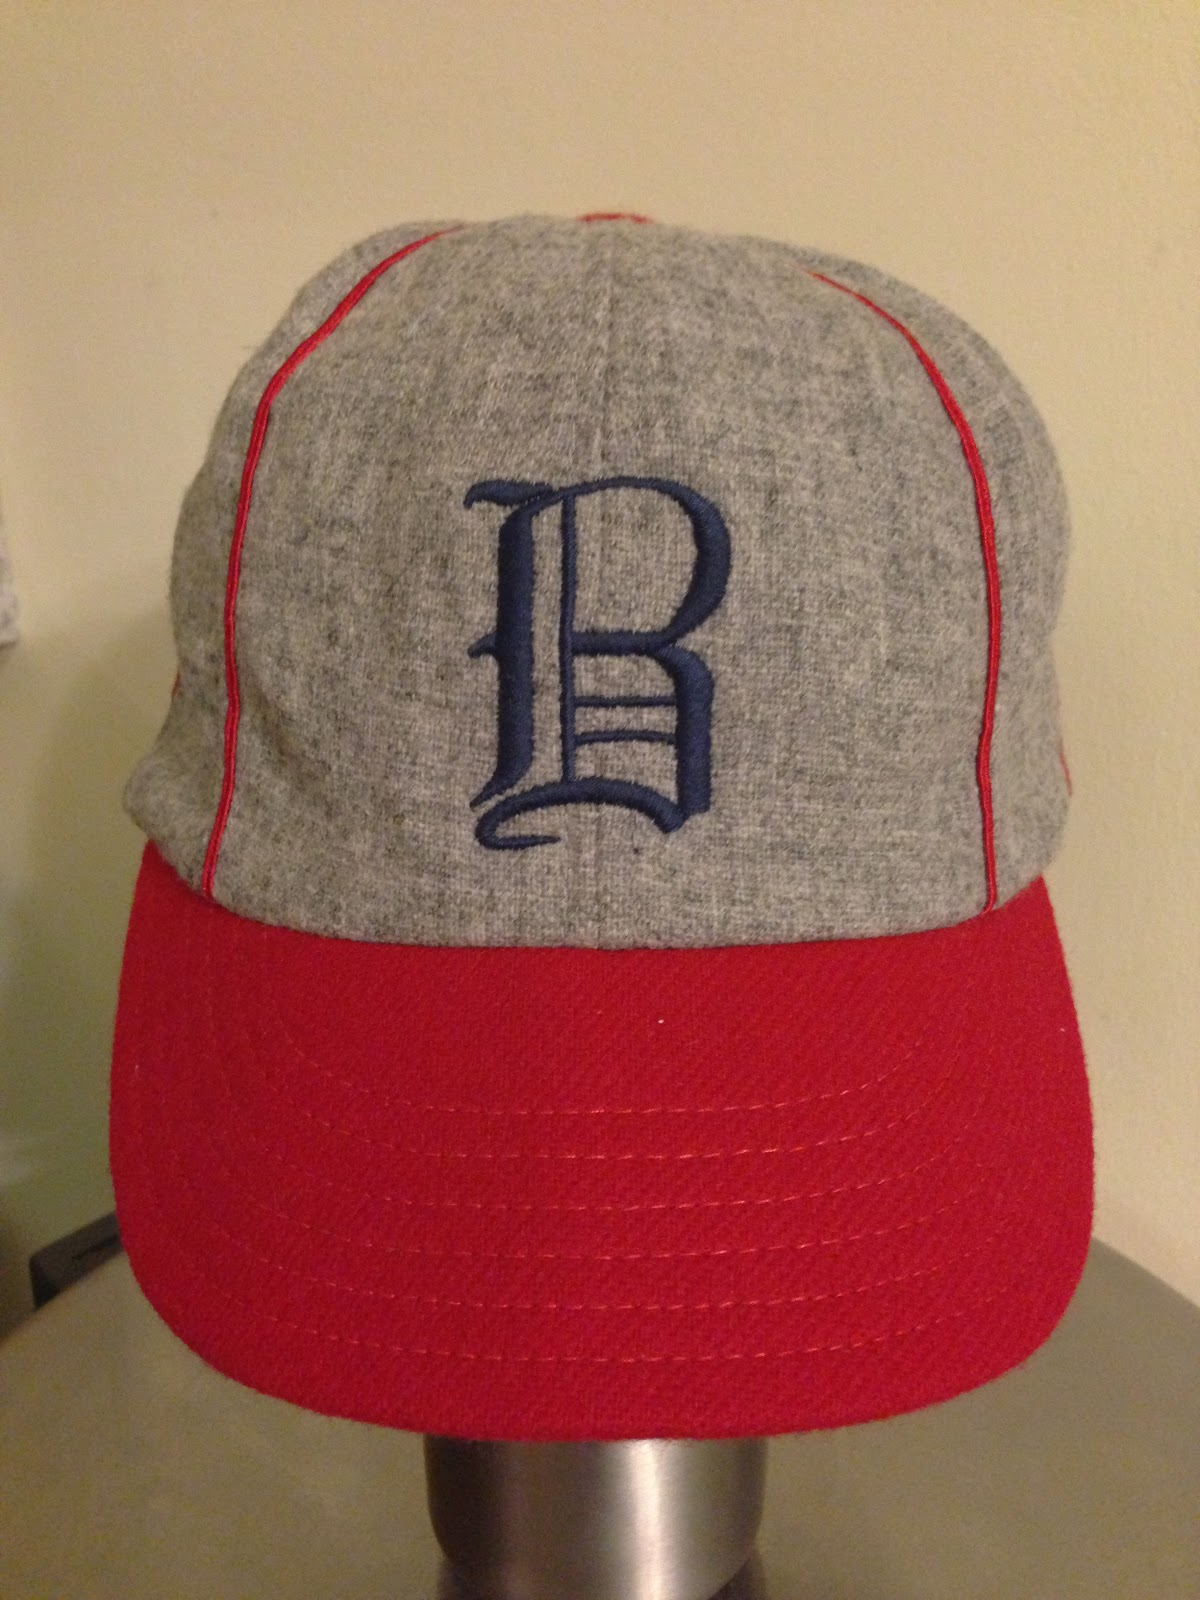 Cooperstown Ball Cap Co Caps 1933 Boston Braves R